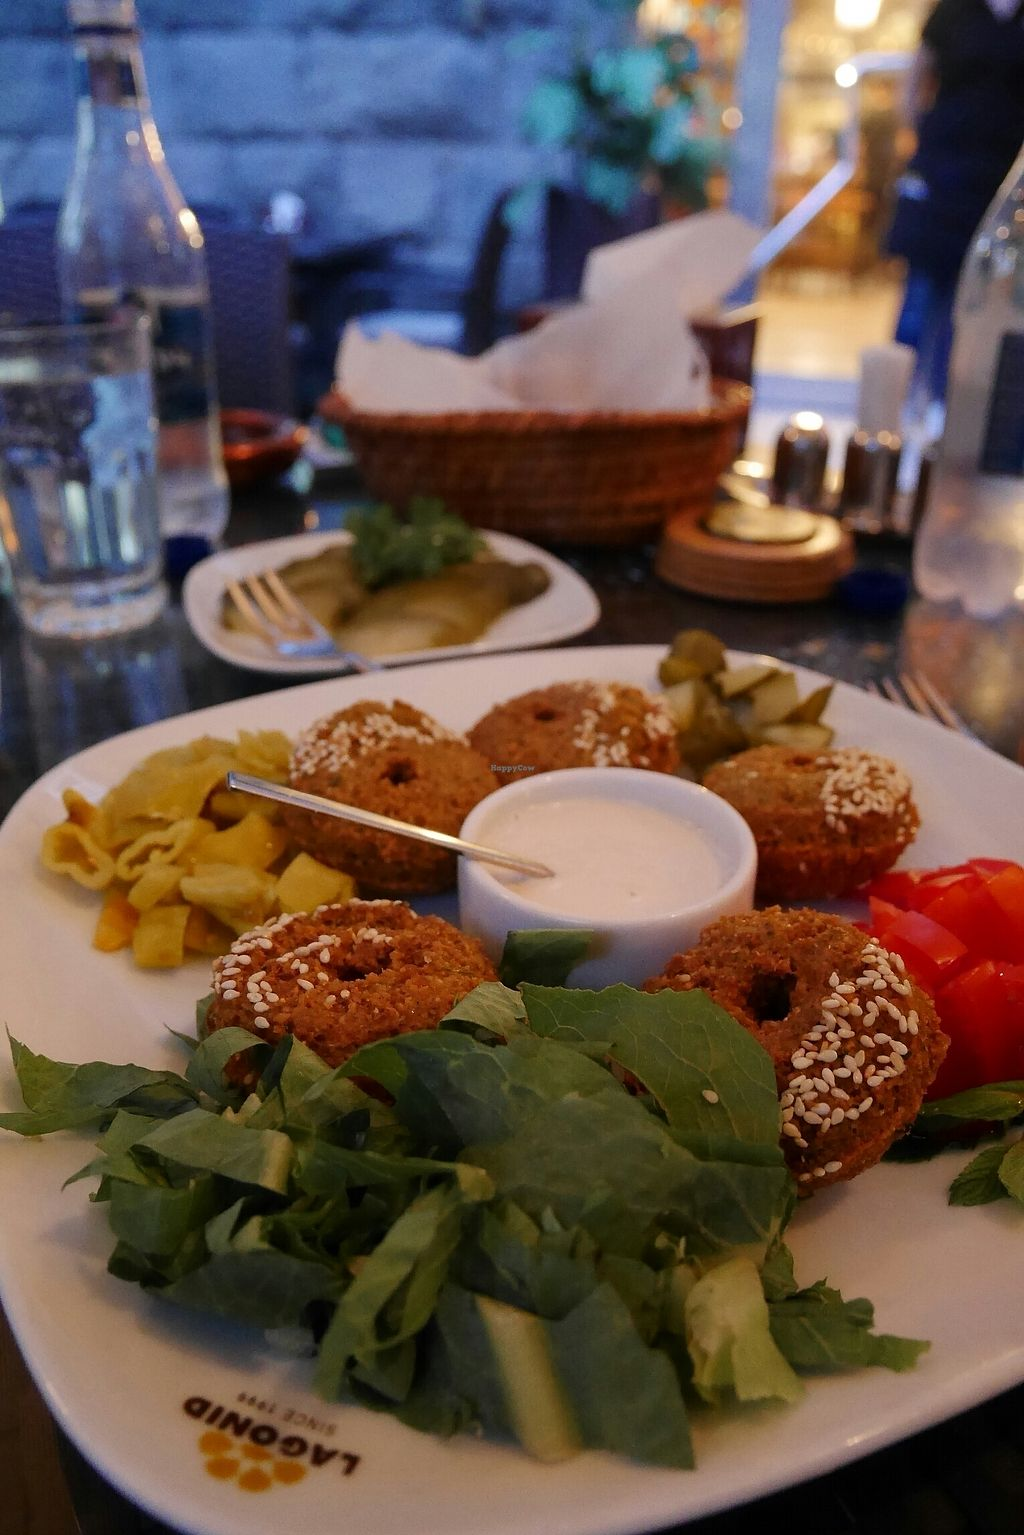 """Photo of Lagonid  by <a href=""""/members/profile/CaseyHapponen"""">CaseyHapponen</a> <br/>Falafel plate <br/> October 1, 2017  - <a href='/contact/abuse/image/40459/310496'>Report</a>"""